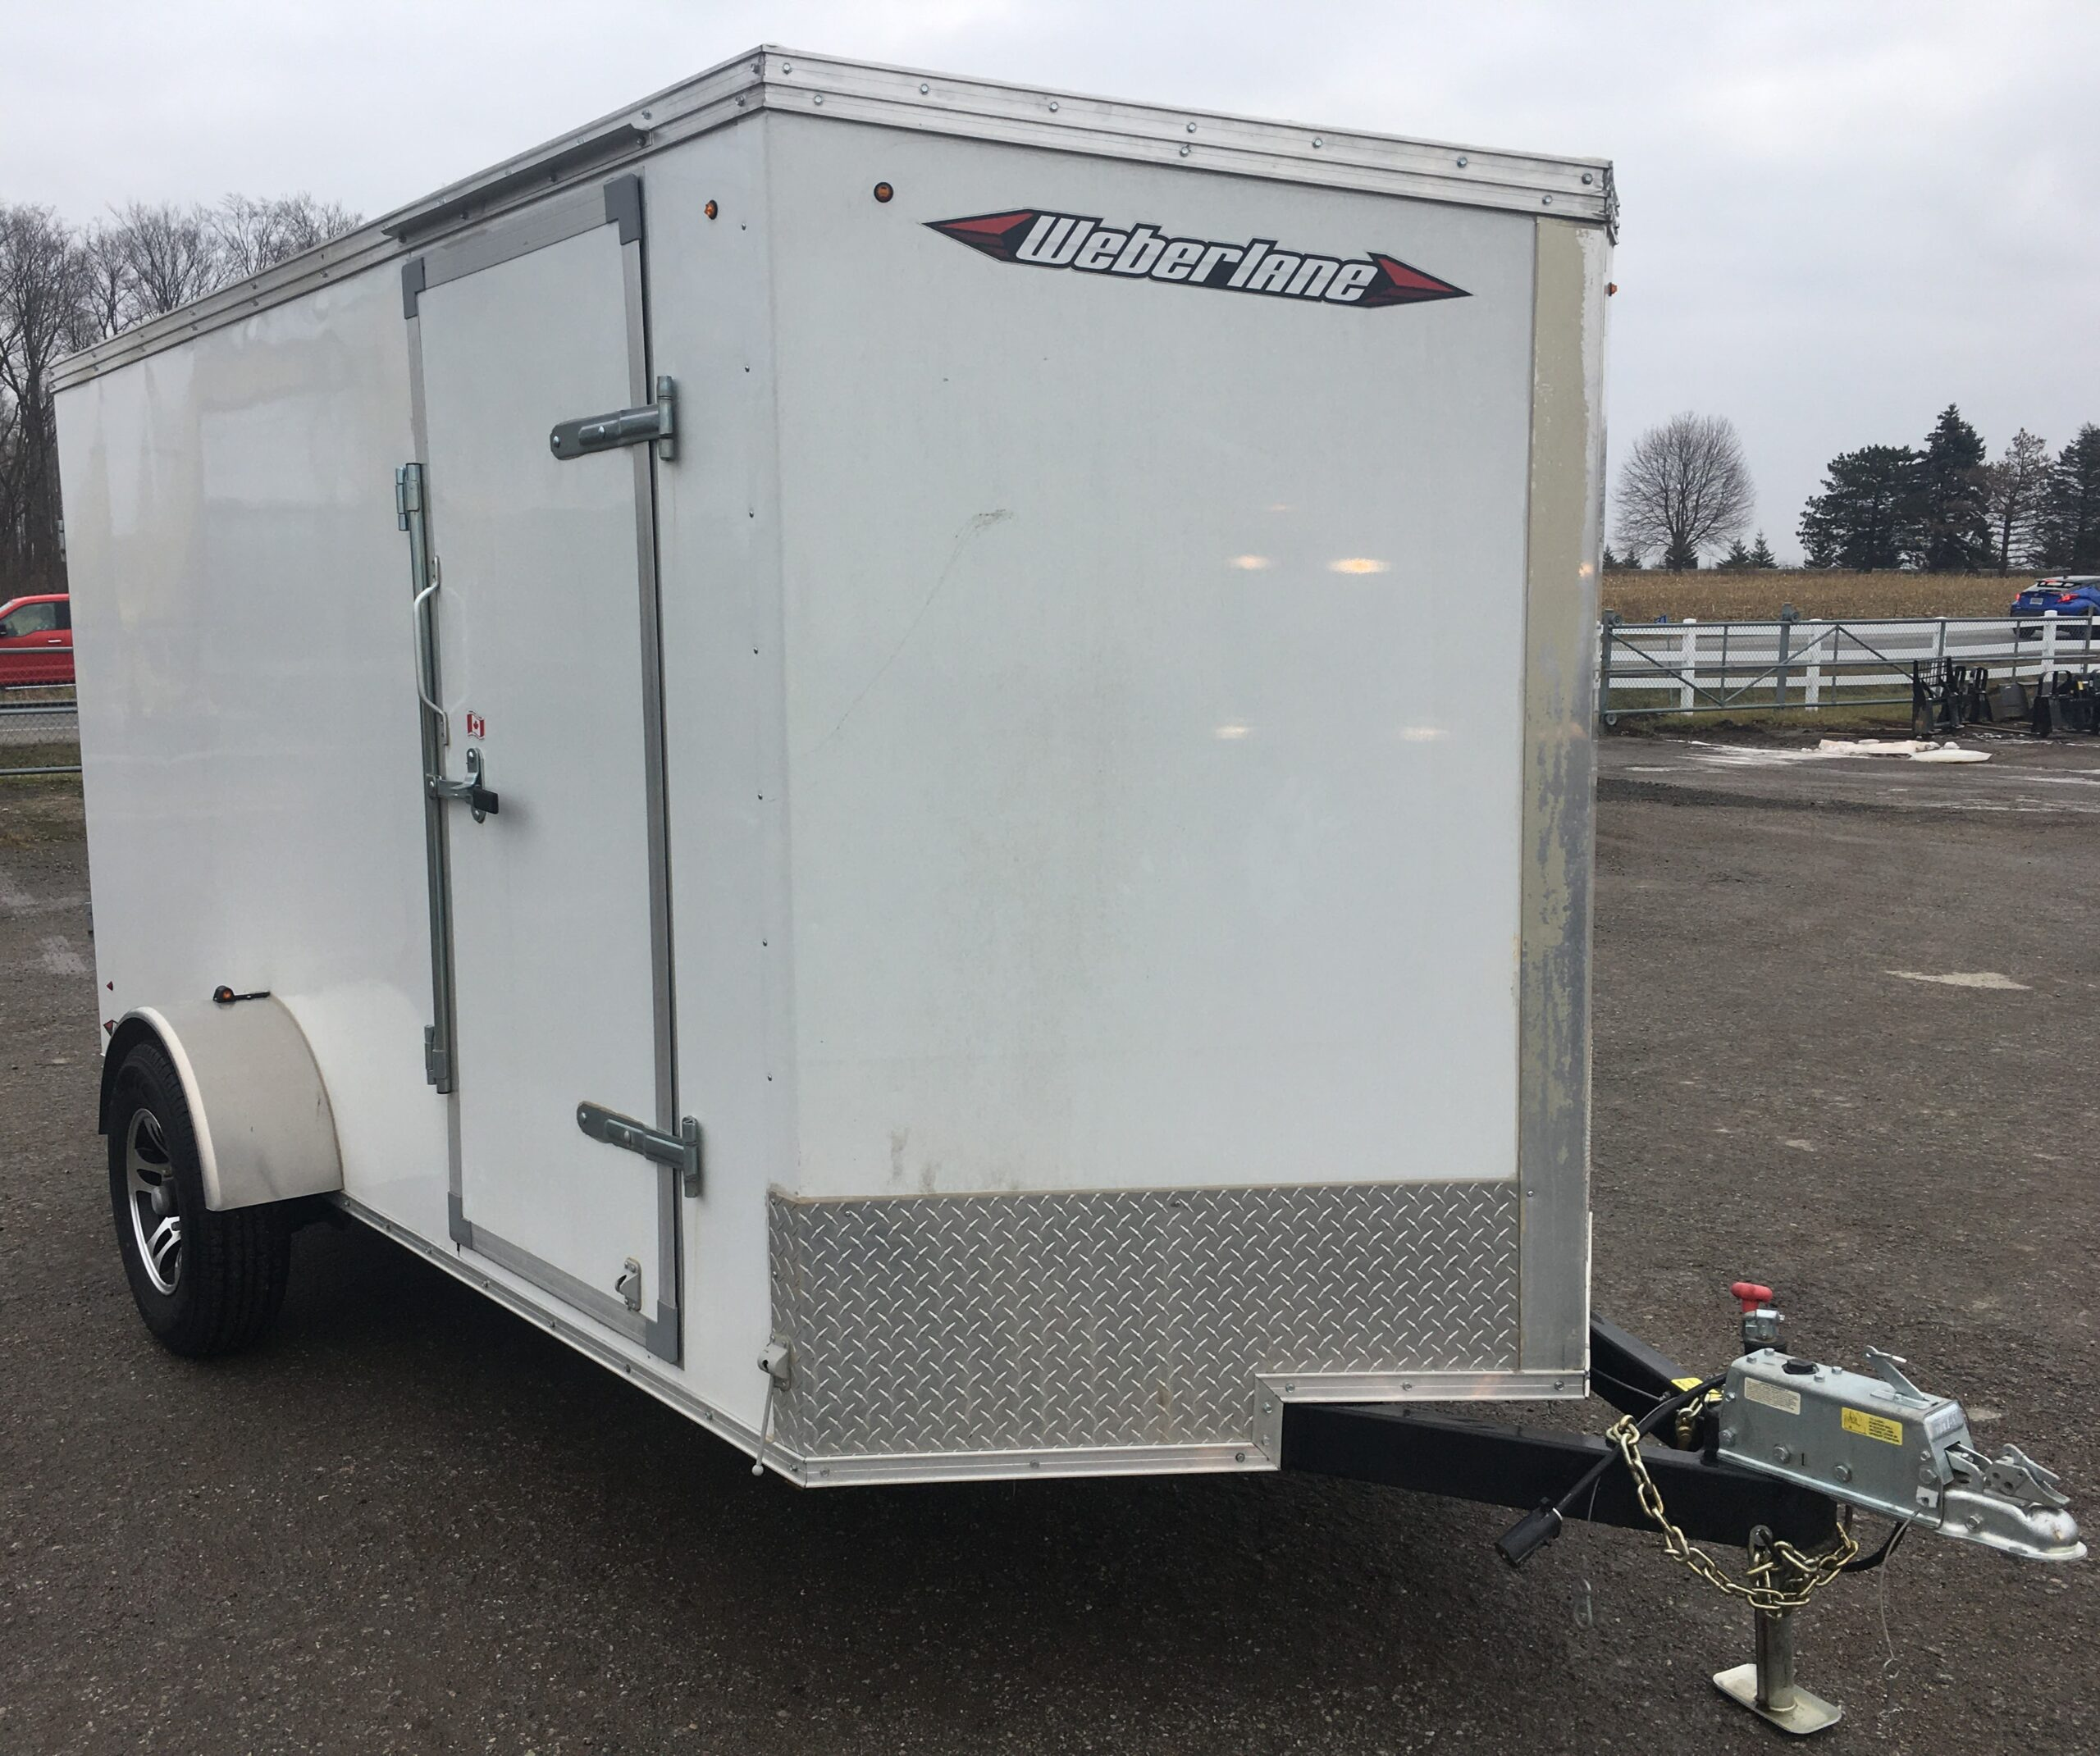 Enclosed Trailer 6X12 Weberlane Image